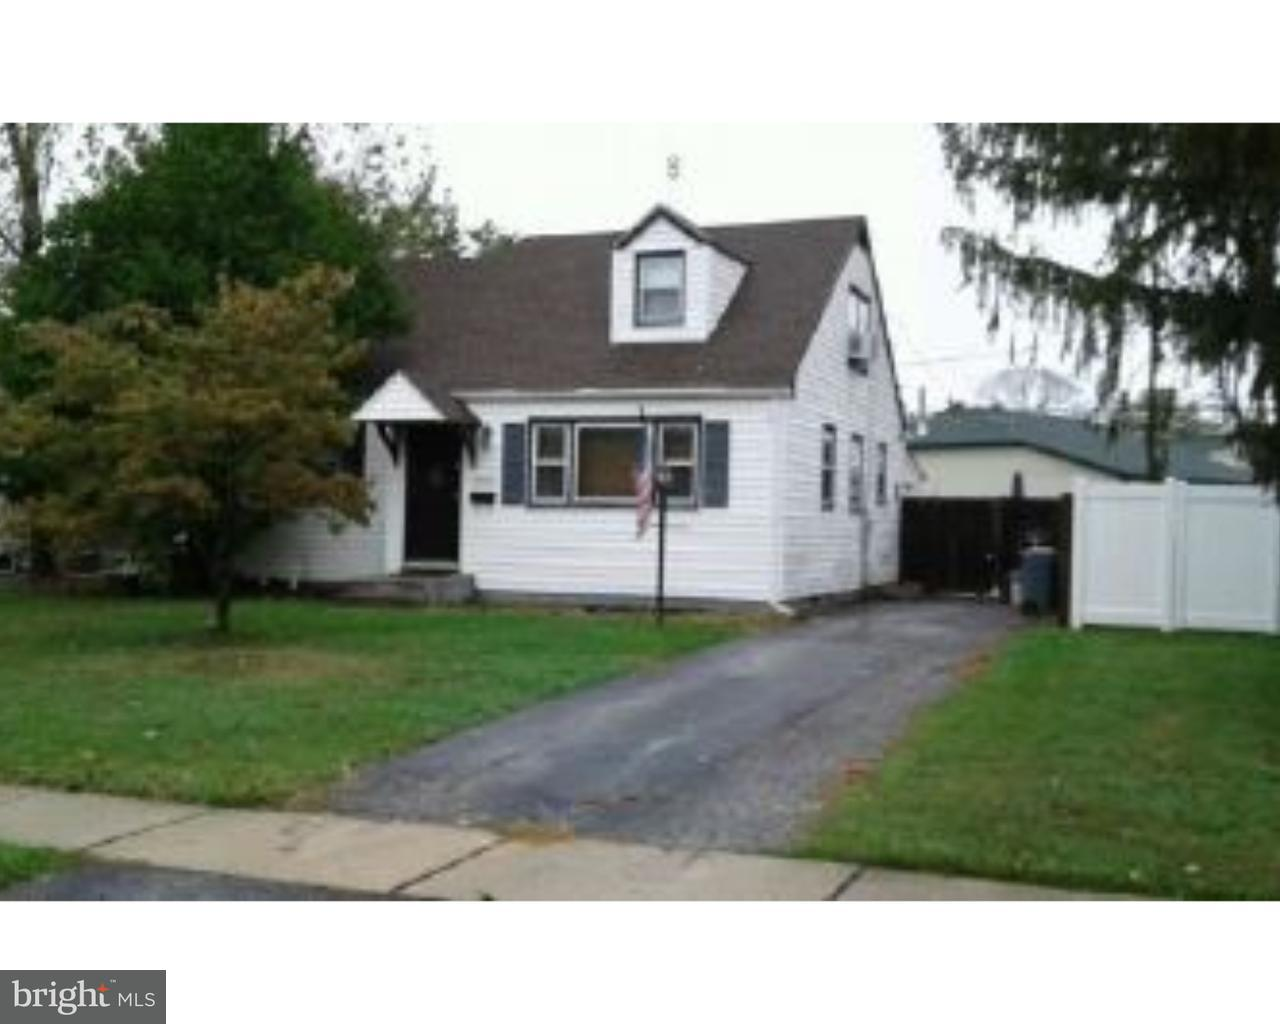 428 S 3RD ST, COLWYN - Listed at $39,080, COLWYN